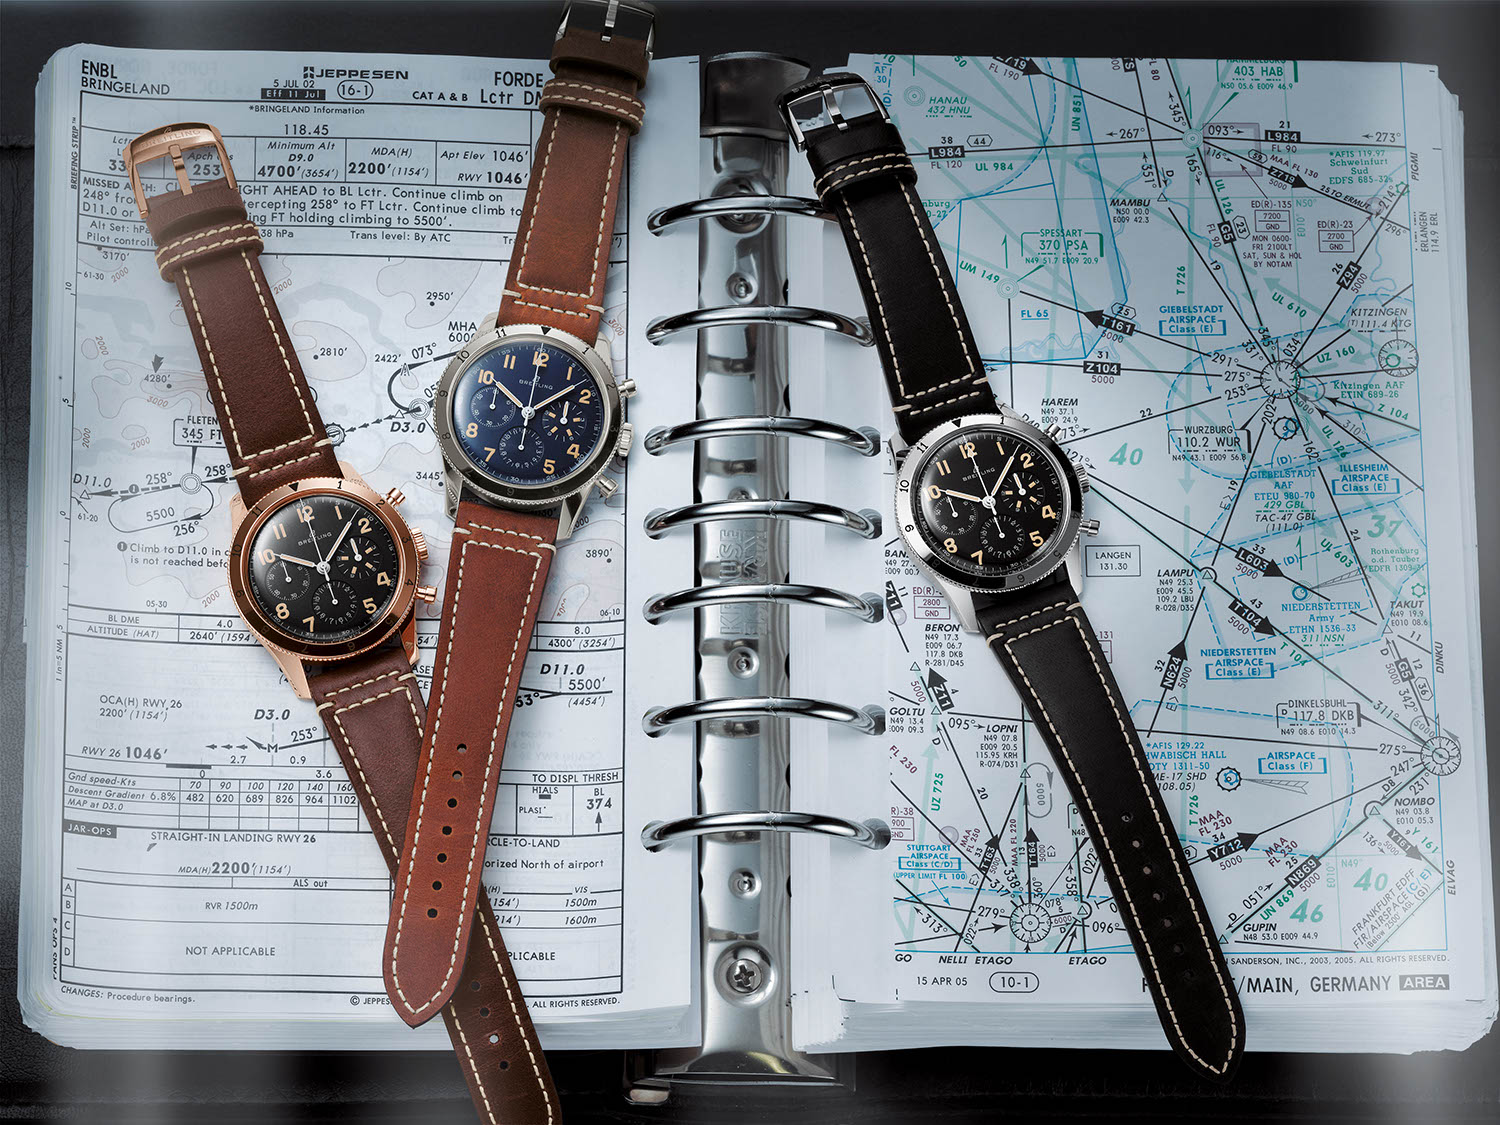 (L-R) The Breitling AVI Ref. 765 1953 Re-Edition in 18K red gold, platinum and steel